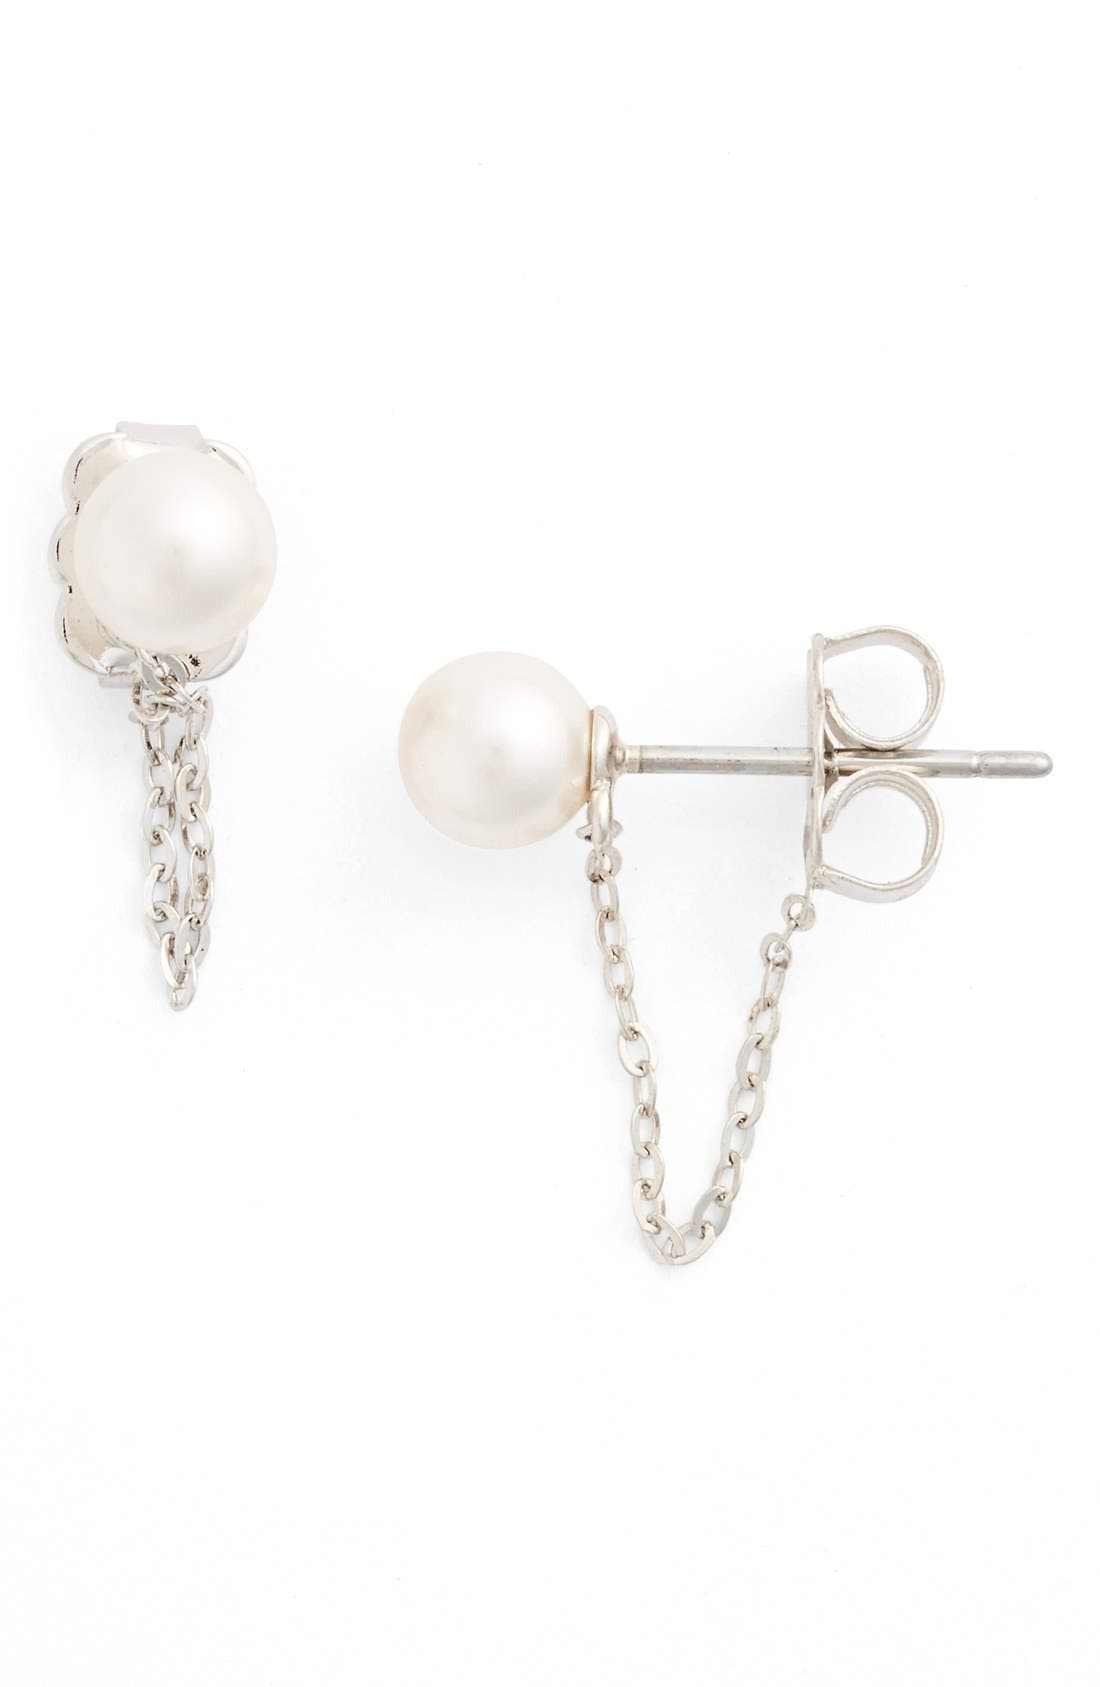 Main Image - Nadri Faux Pearl Chain Earrings